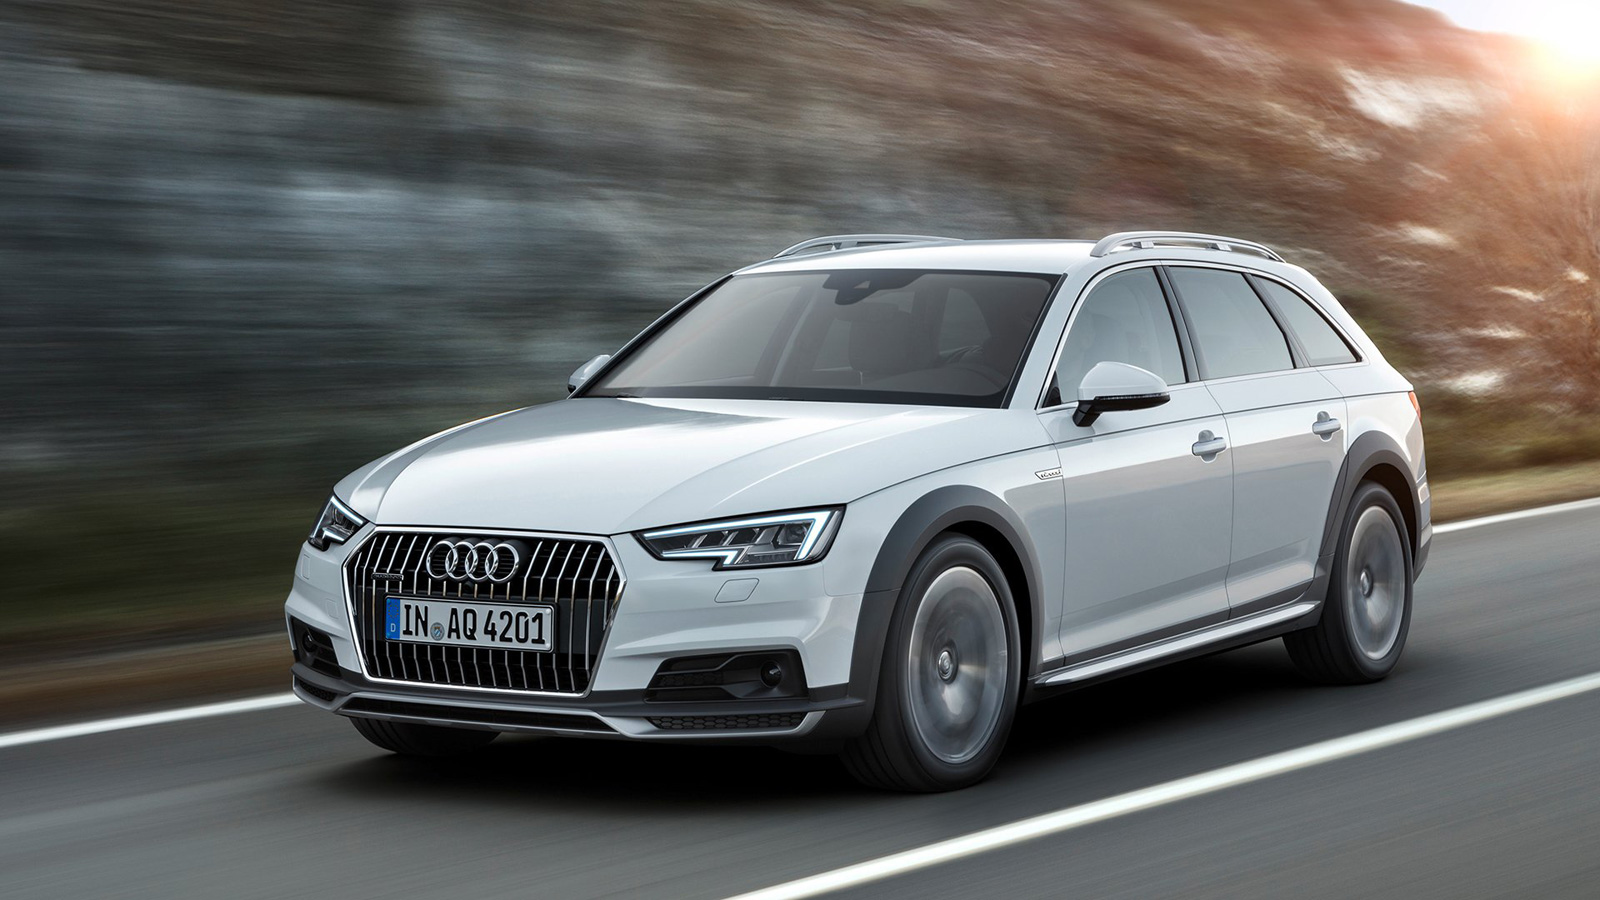 2017 Audi A4 Allroad Arrives this Fall with $44,950 Price Tag ...